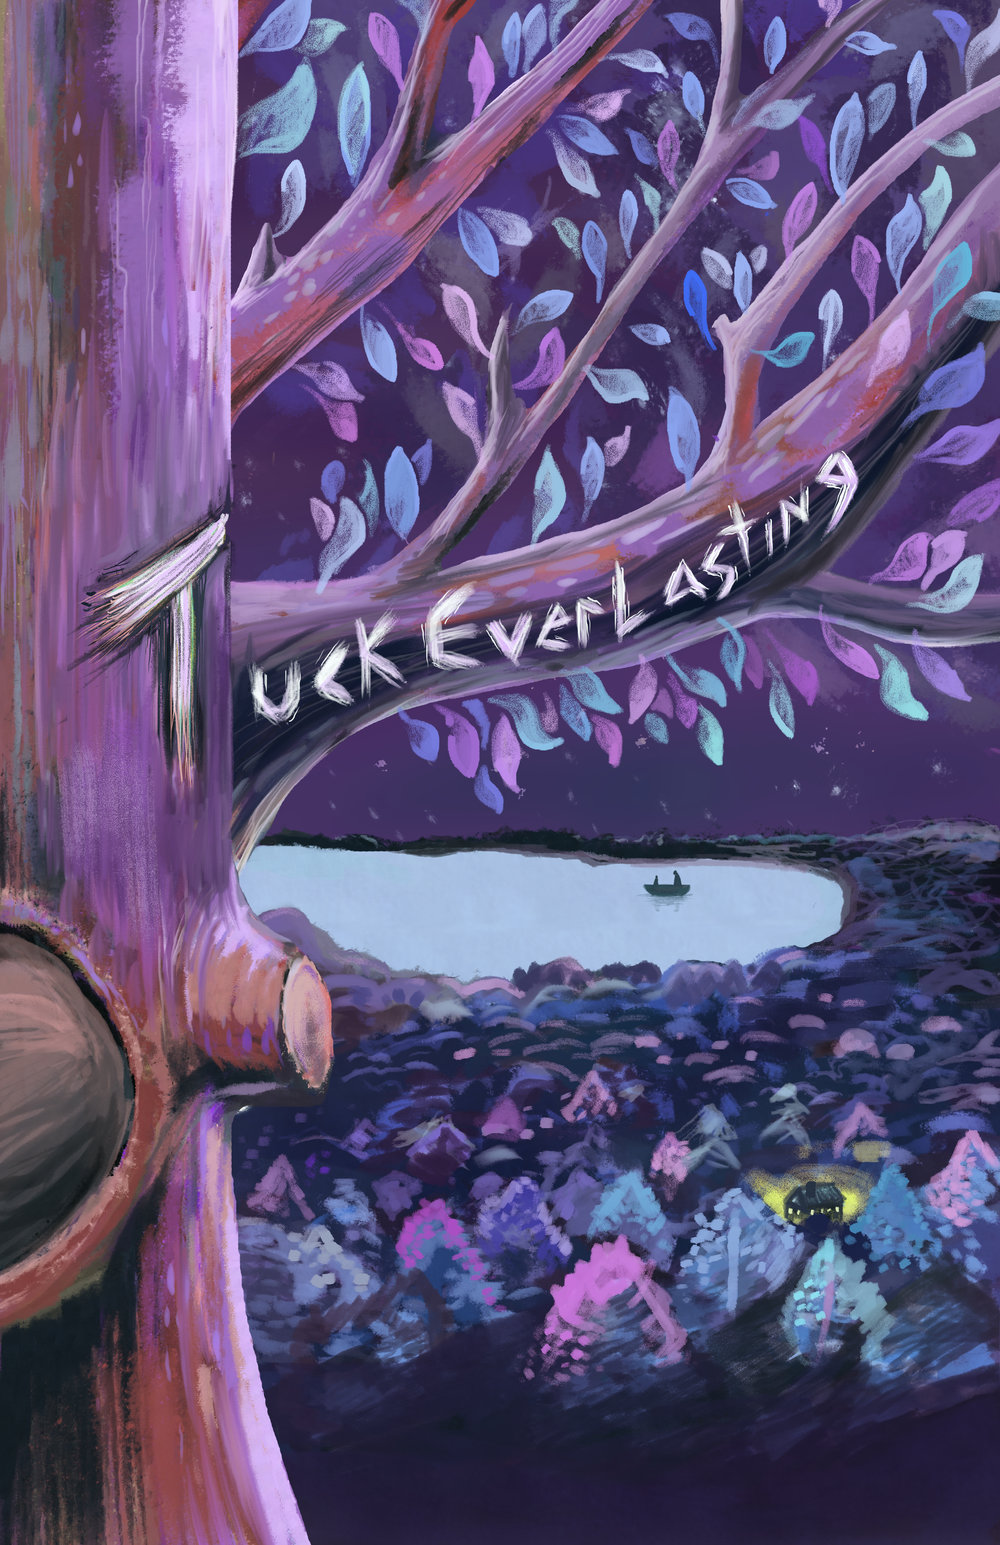 Tuck Everlasting poster for the Coterie Theater. 11x17 digital painting